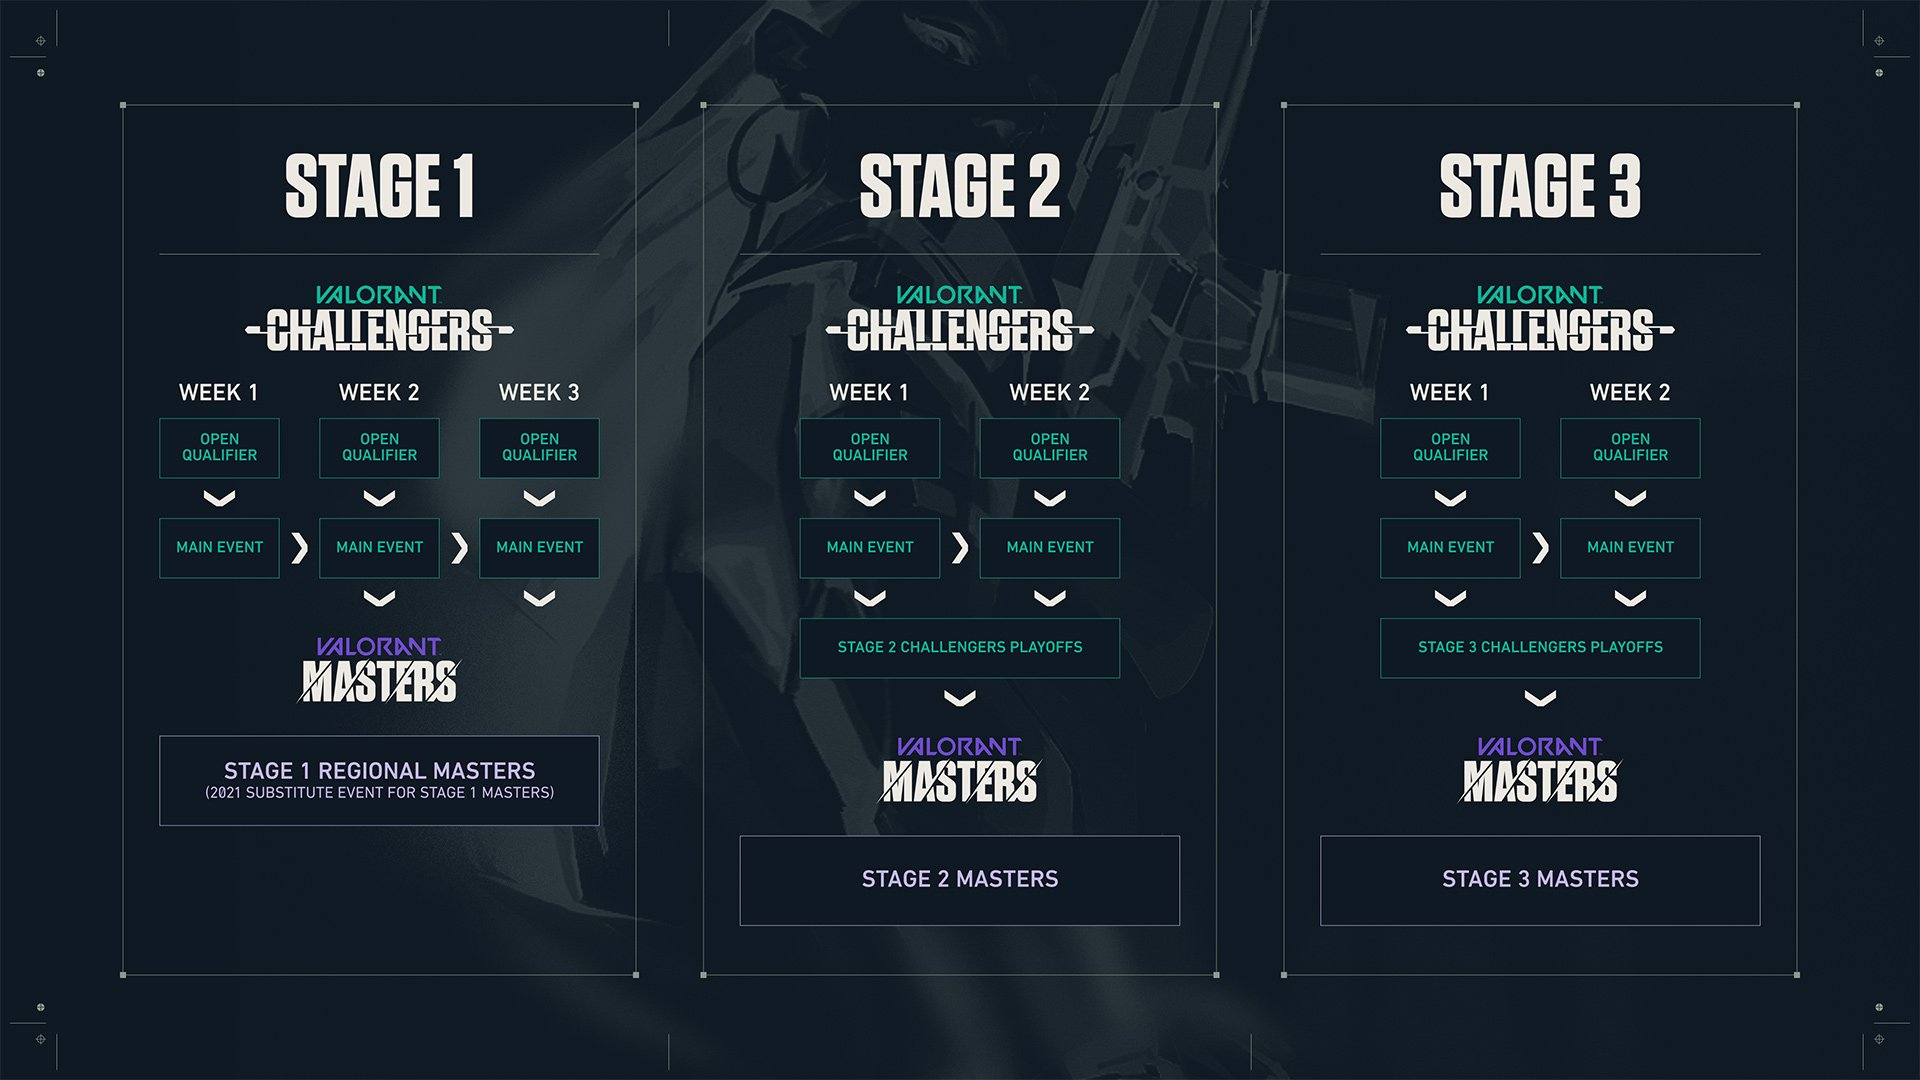 Valorant Challengers series format regions structure